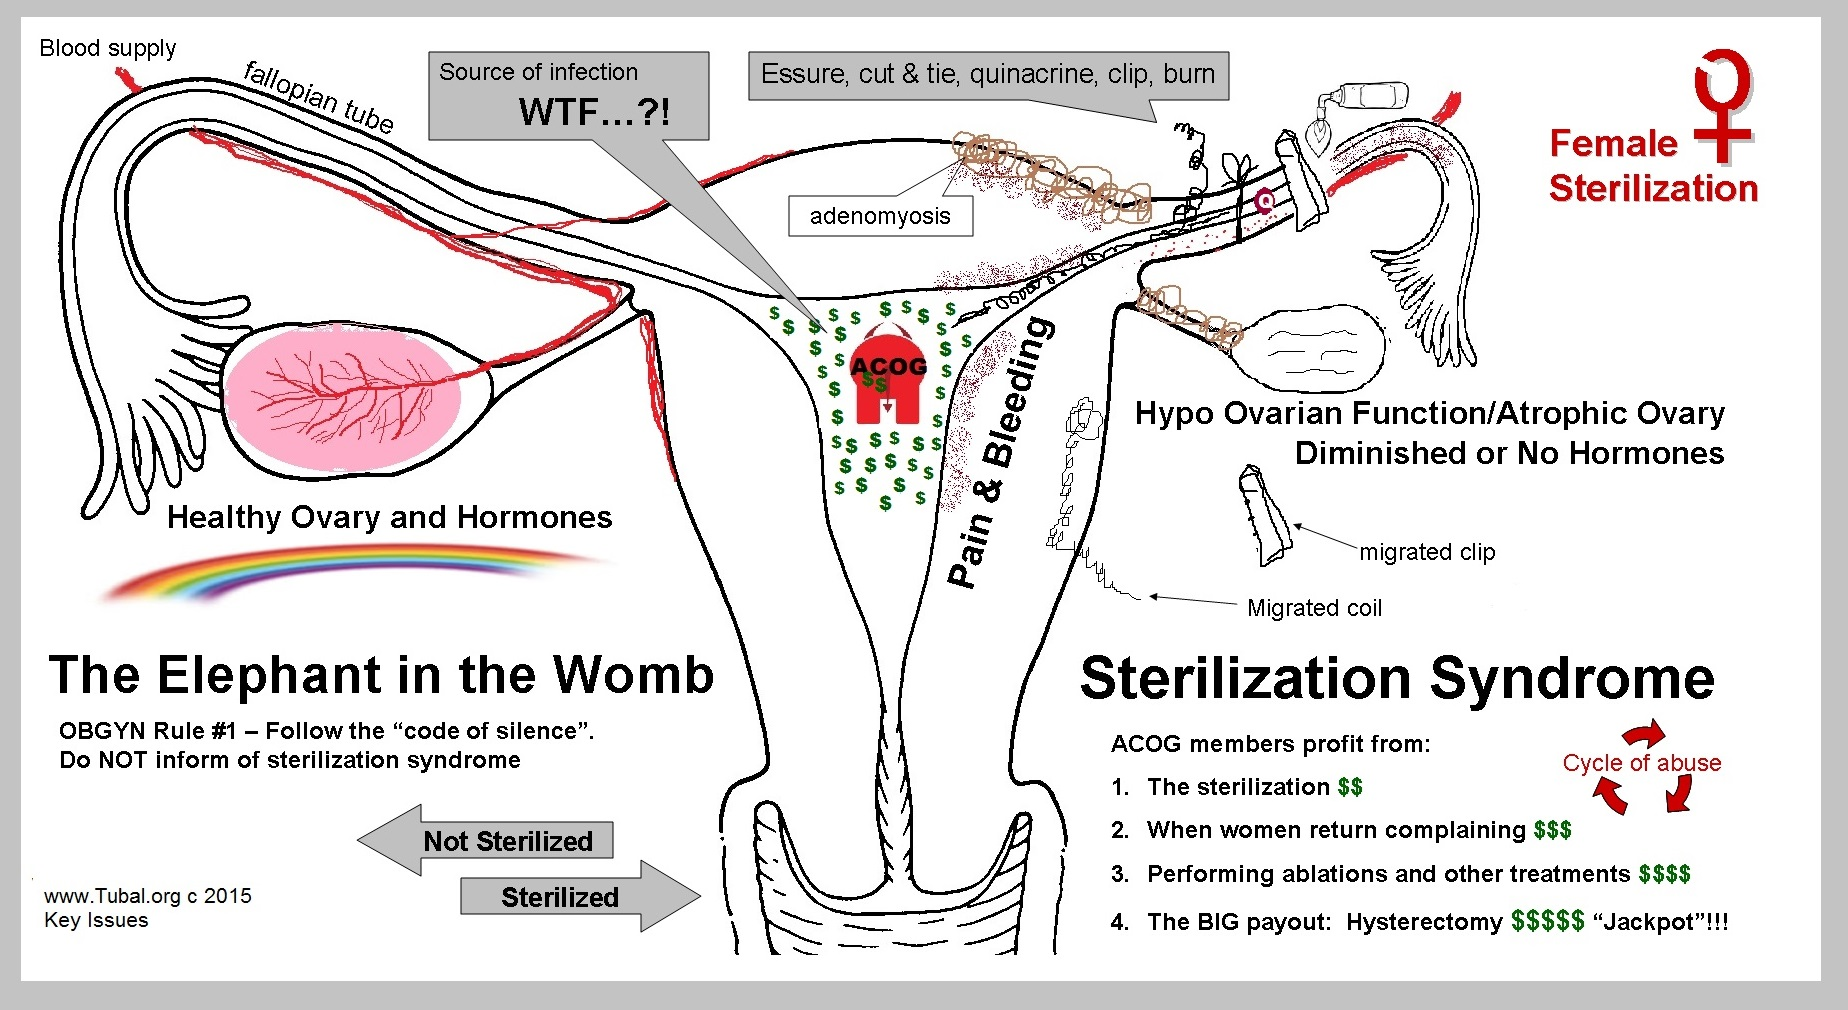 The elephant in the womb - Sterilization Syndrome